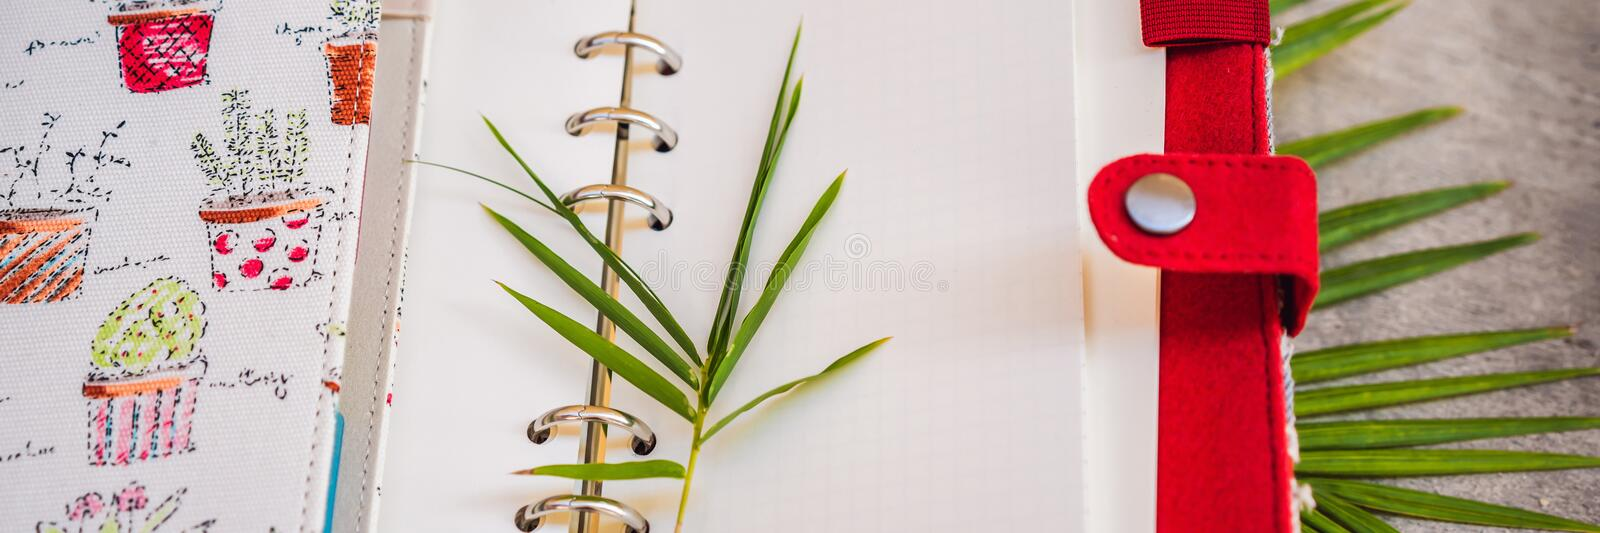 Notepad and stationery on wooden background. Planner for business and study. Fans of stationery BANNER, LONG FORMAT. Notepad and stationery on wooden background royalty free stock photo